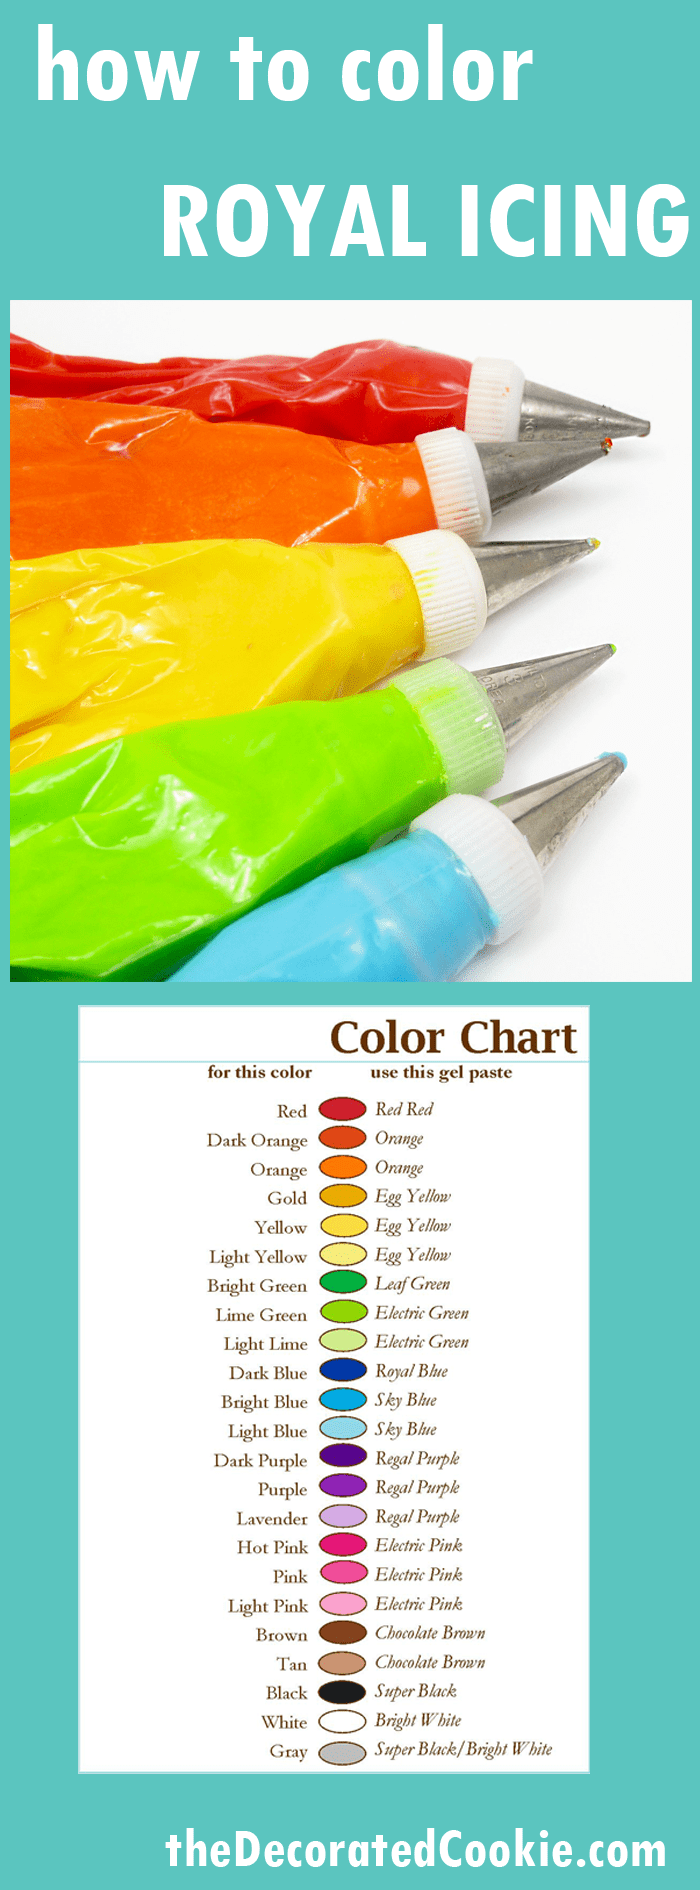 Royal icing color chart the decorated cookie how to color royal icing nvjuhfo Images